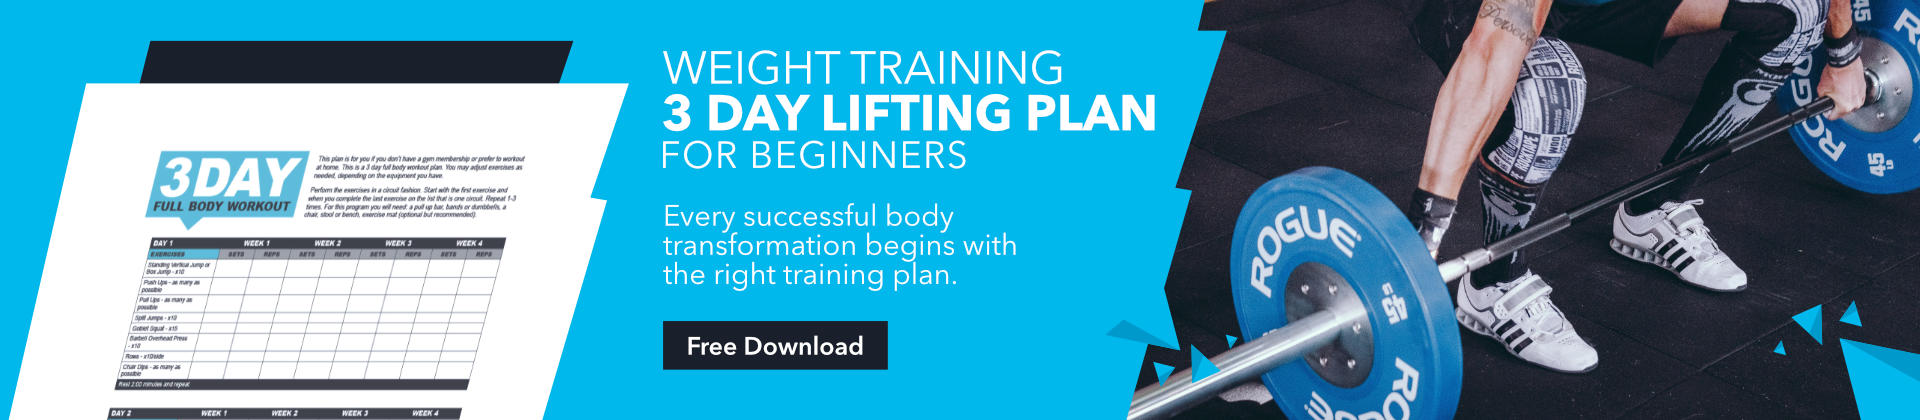 Muscle building workout plans for beginers to exercise at